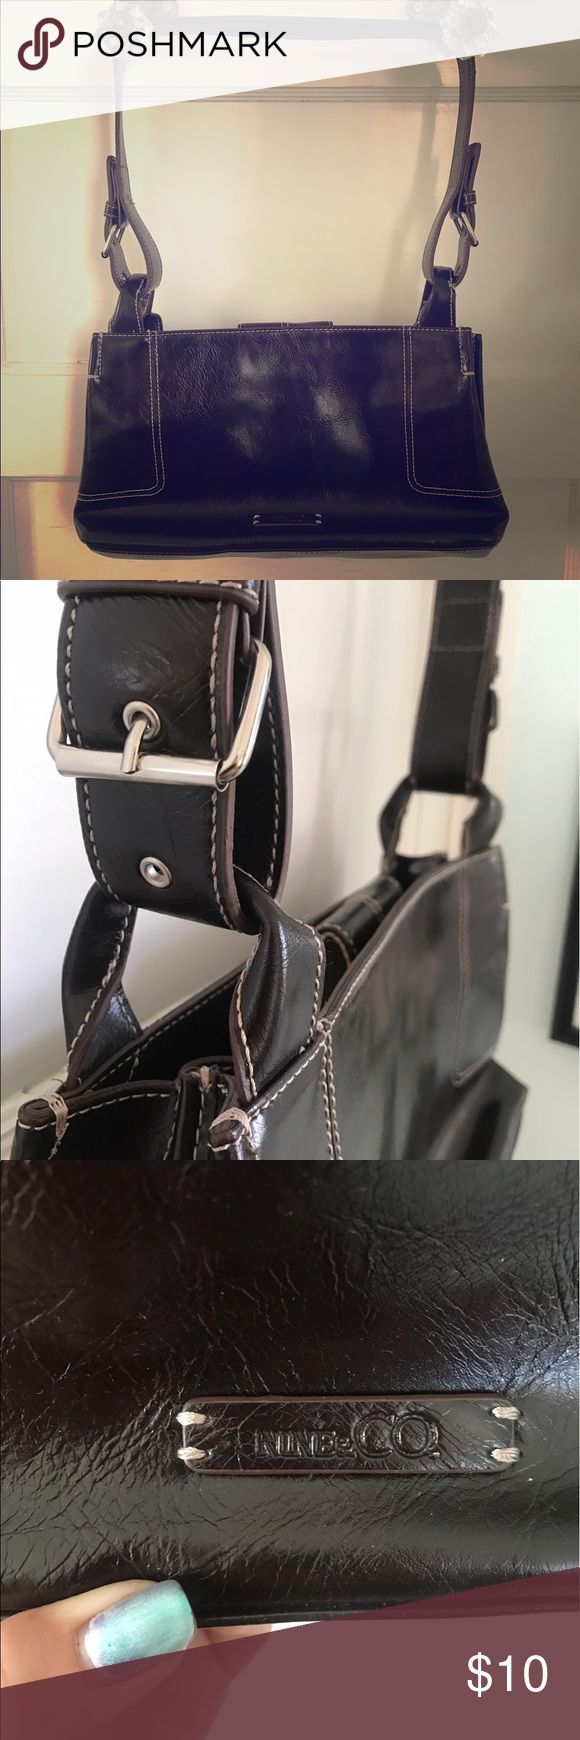 Nike & Co by Nine West Vegan Leather Purse Like new purse, super functional so many pockets for easy organization. Great purse. Dark brown. Small/medium size shoulder bag. Vegan leather. Nine West Bags Shoulder Bags